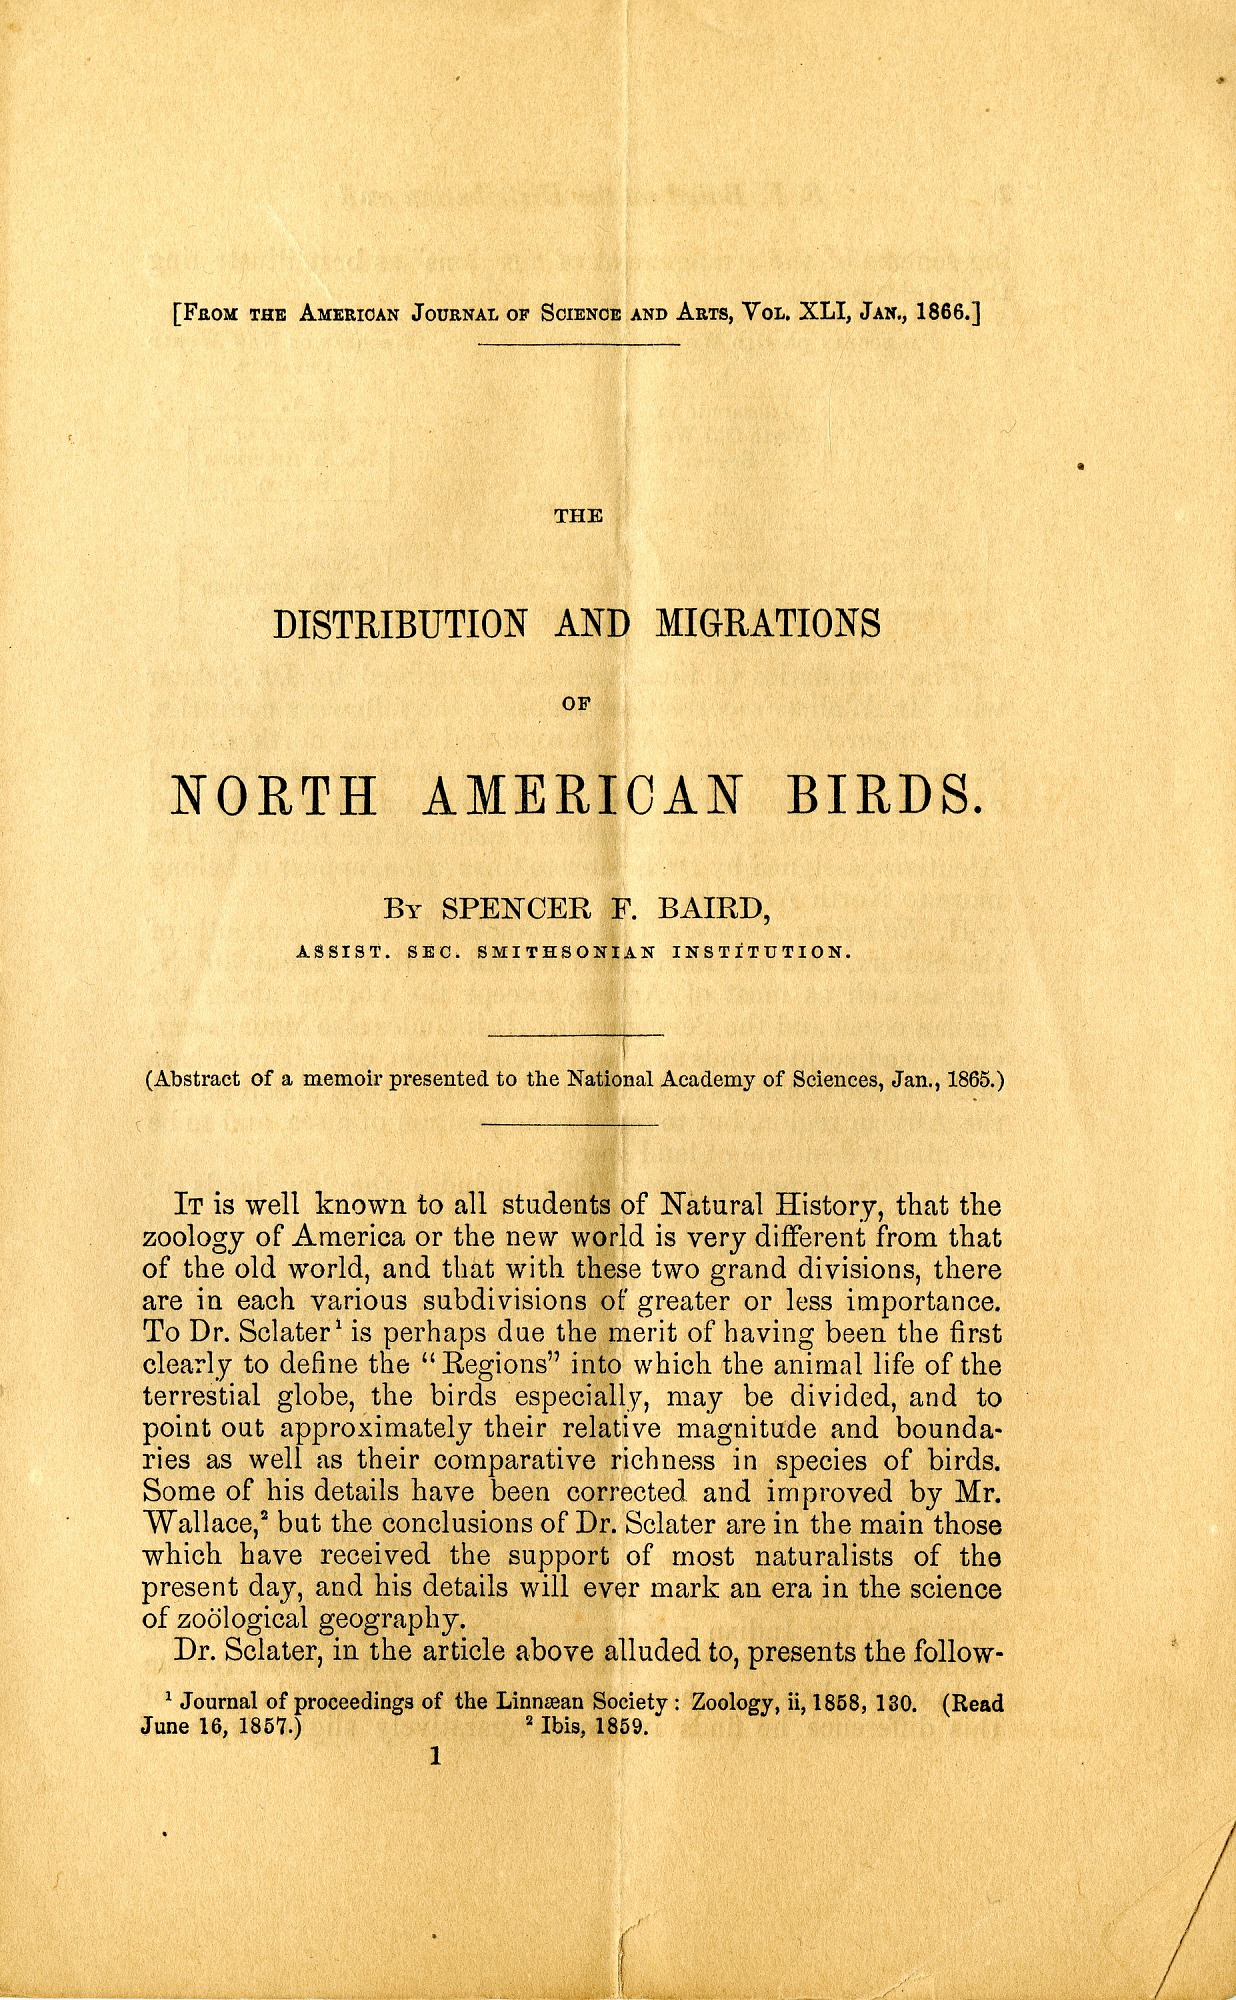 The Distribution and Migration of North American Birds, January, 1866